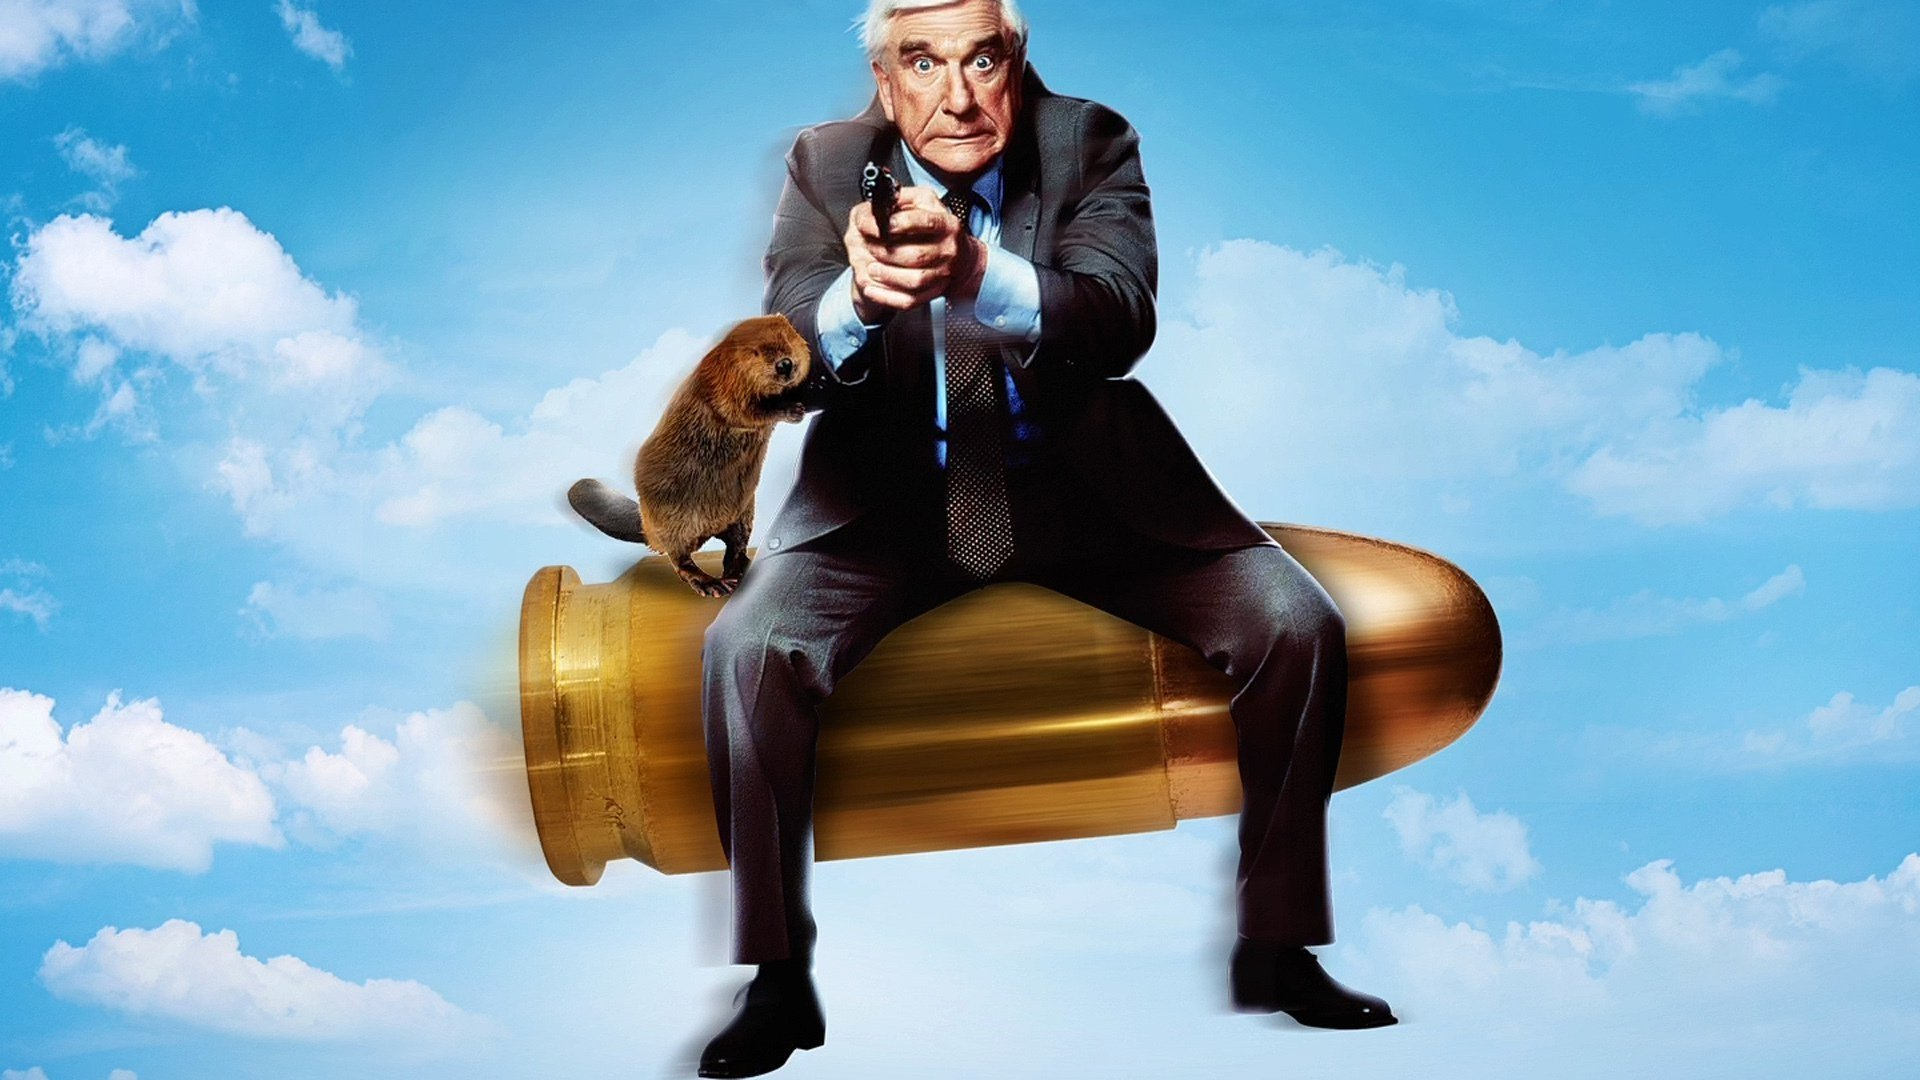 Download The Naked Gun 2½: The Smell of Fear full hd movie